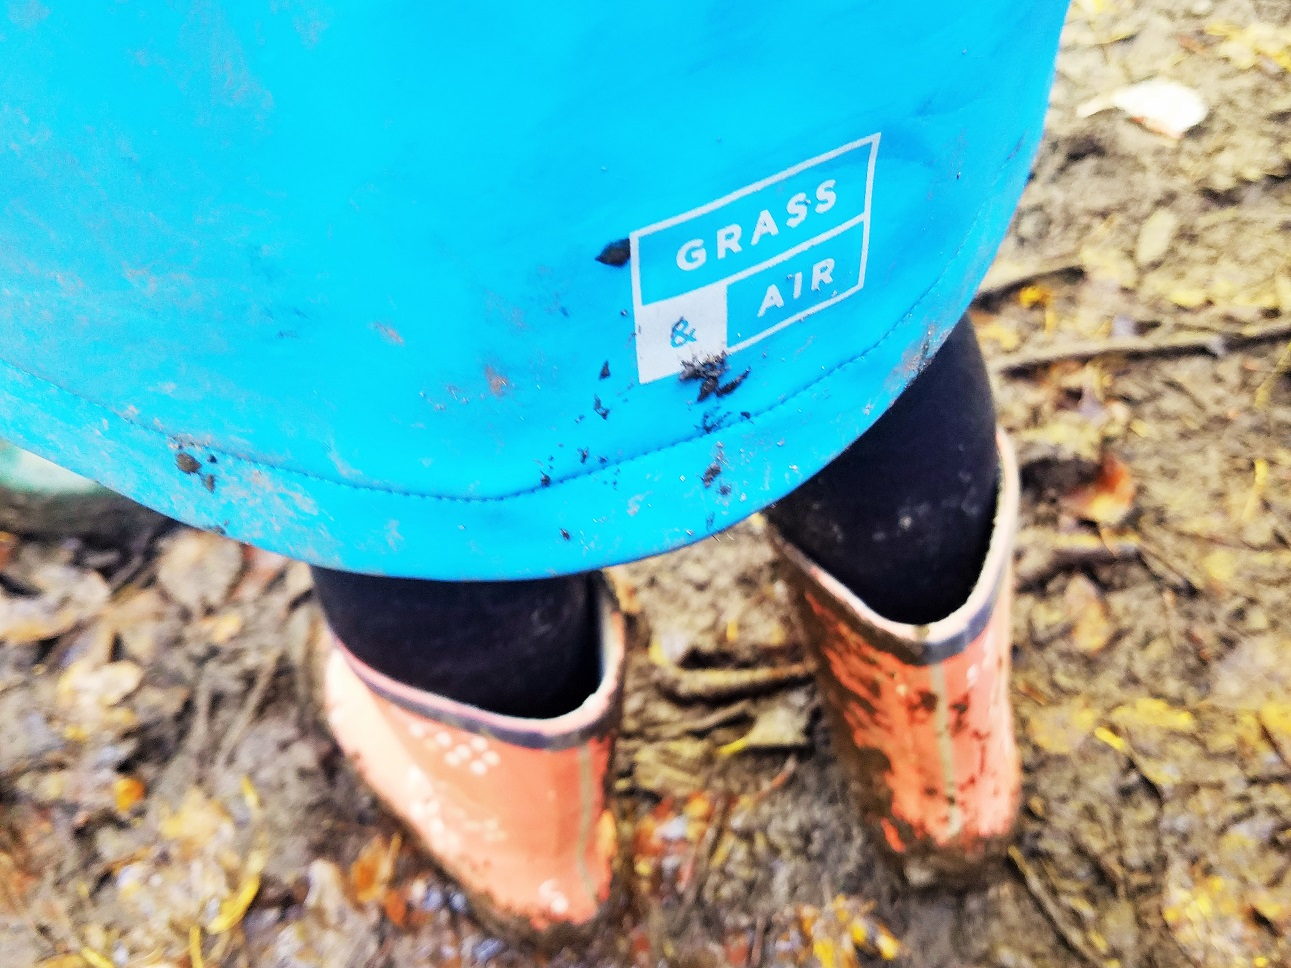 Grass & Air muddy wellies and logo Blogcrush week 41